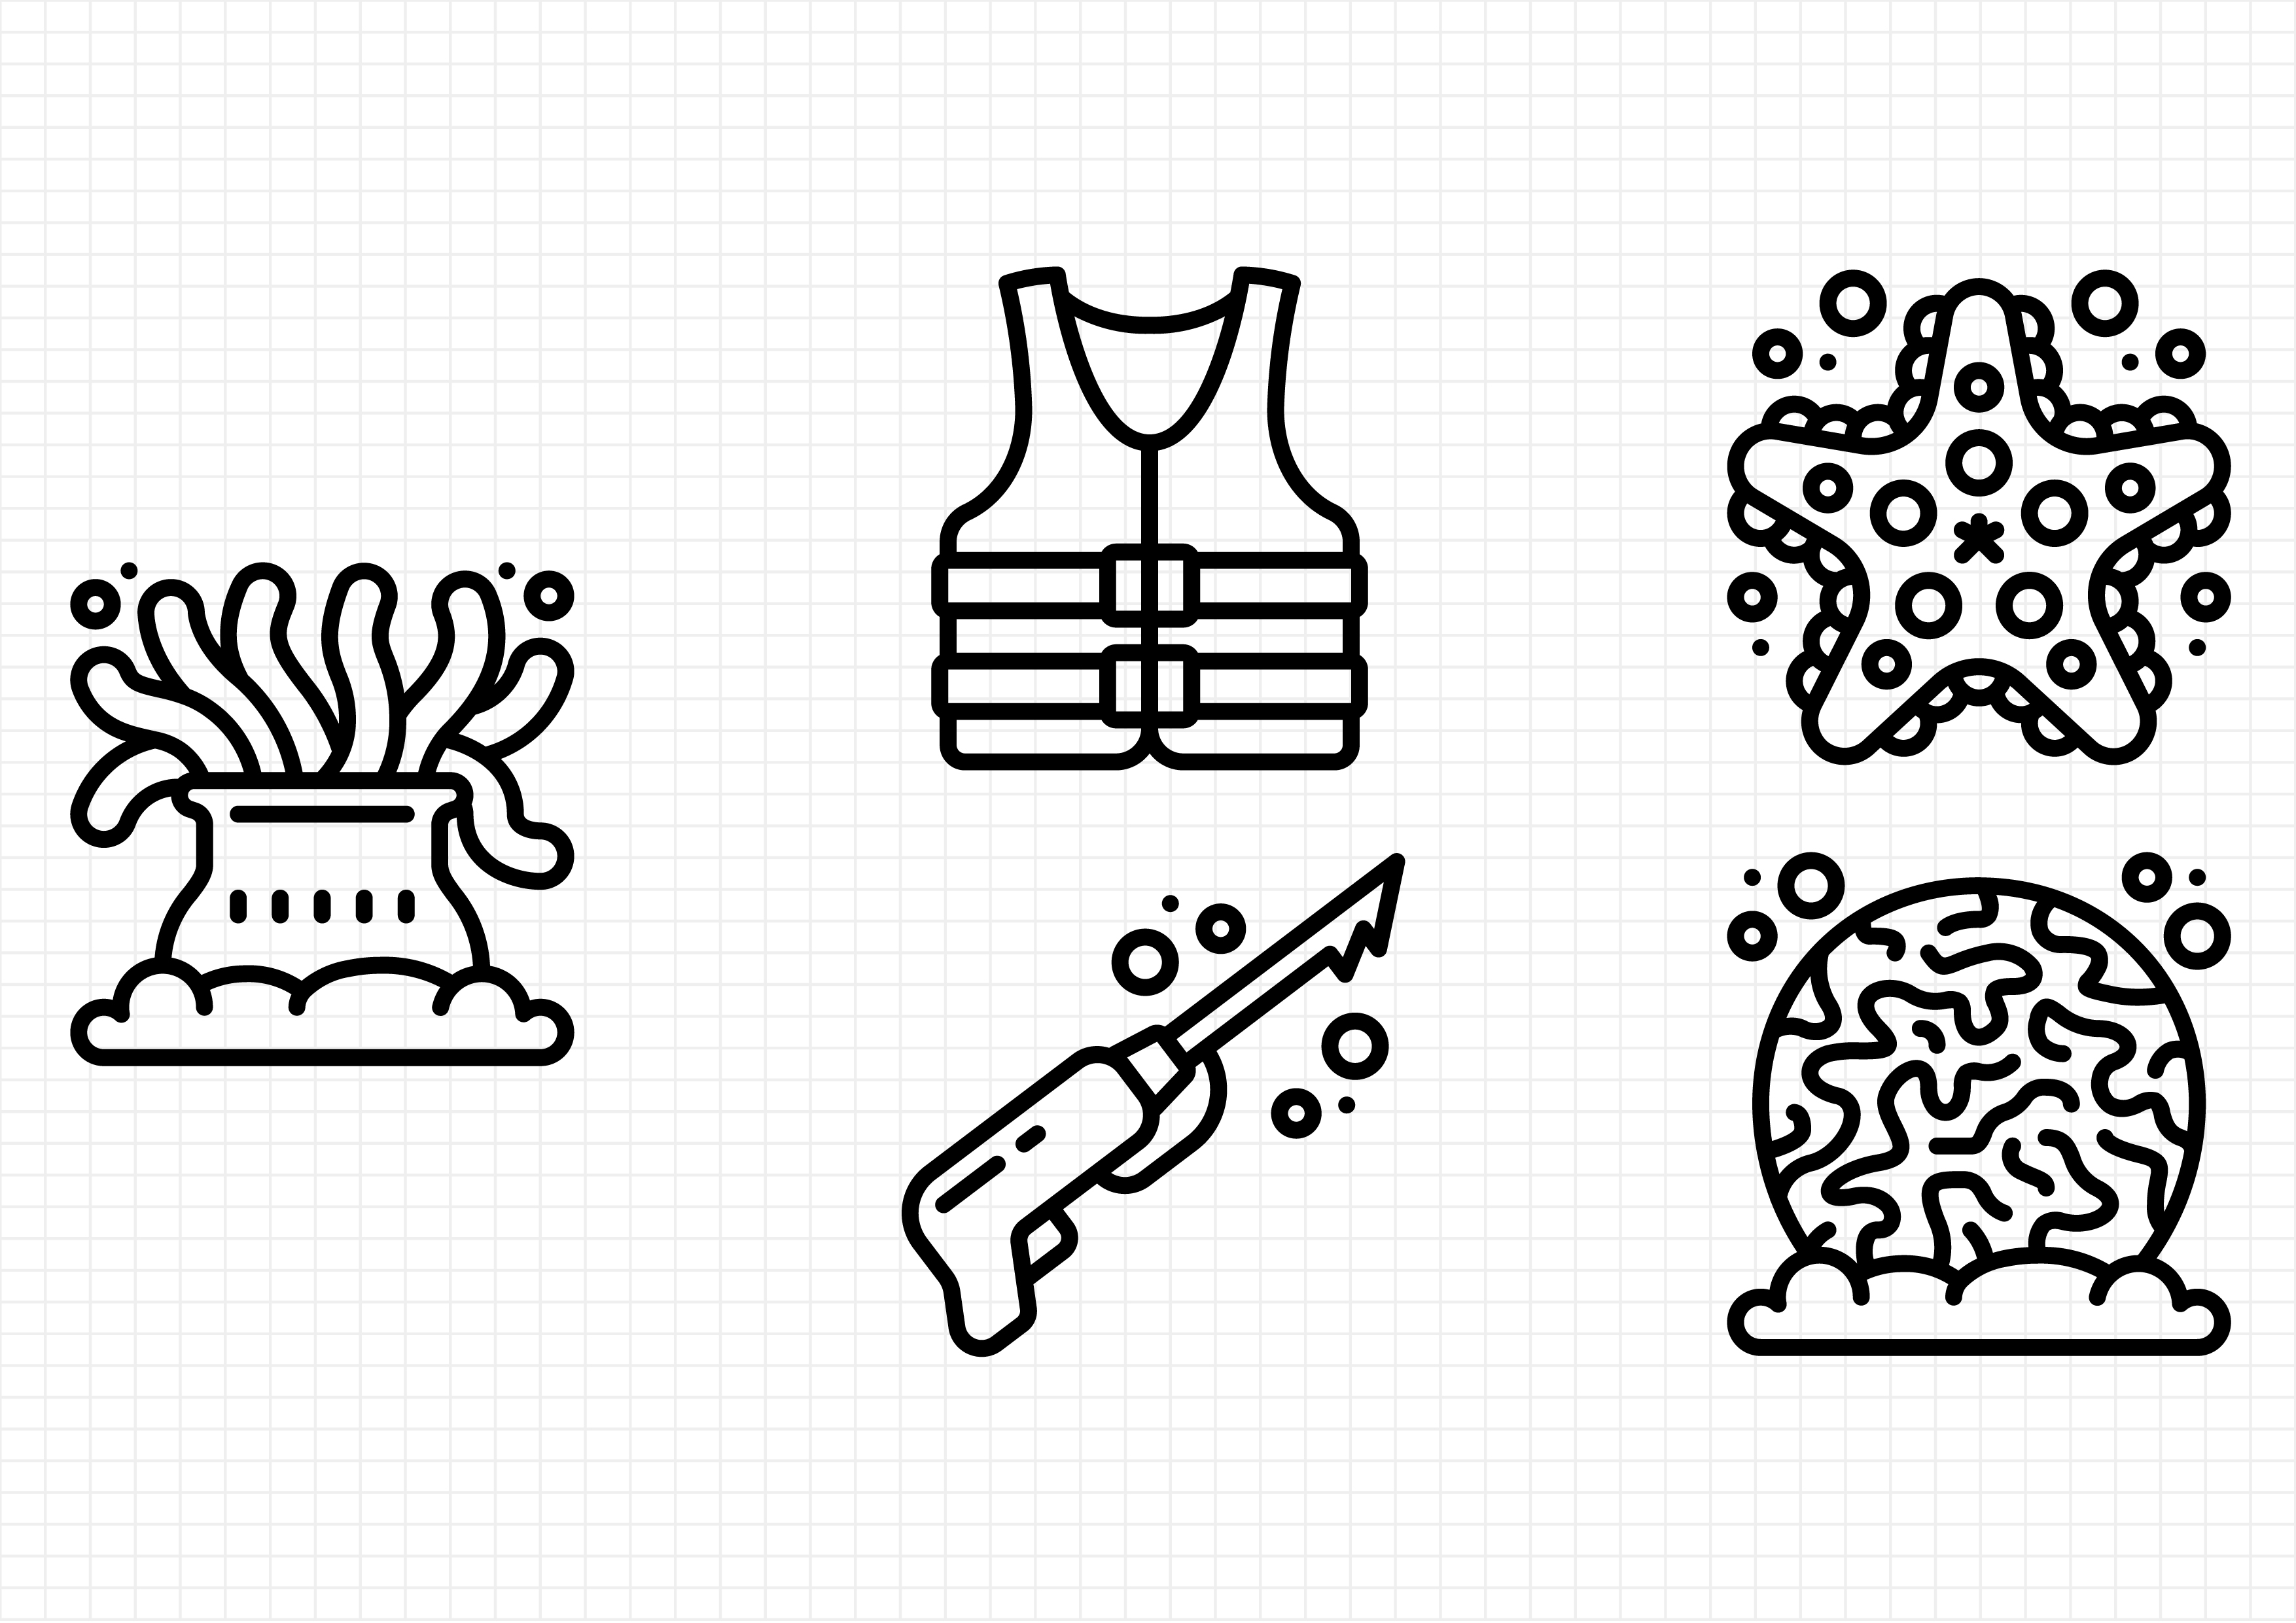 Download Free Diving Graphic By Gantengagif7 Creative Fabrica for Cricut Explore, Silhouette and other cutting machines.